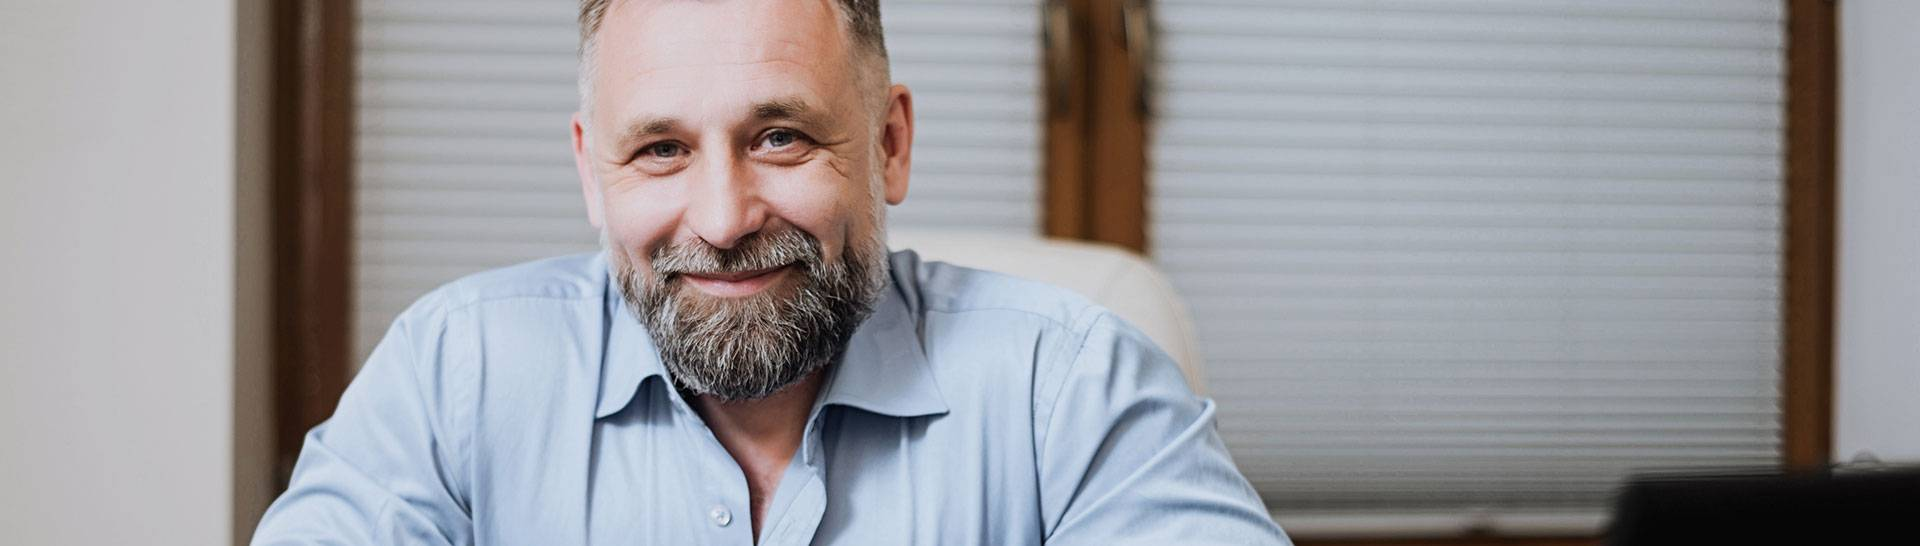 Middle age man with grey beard smiling in office setting